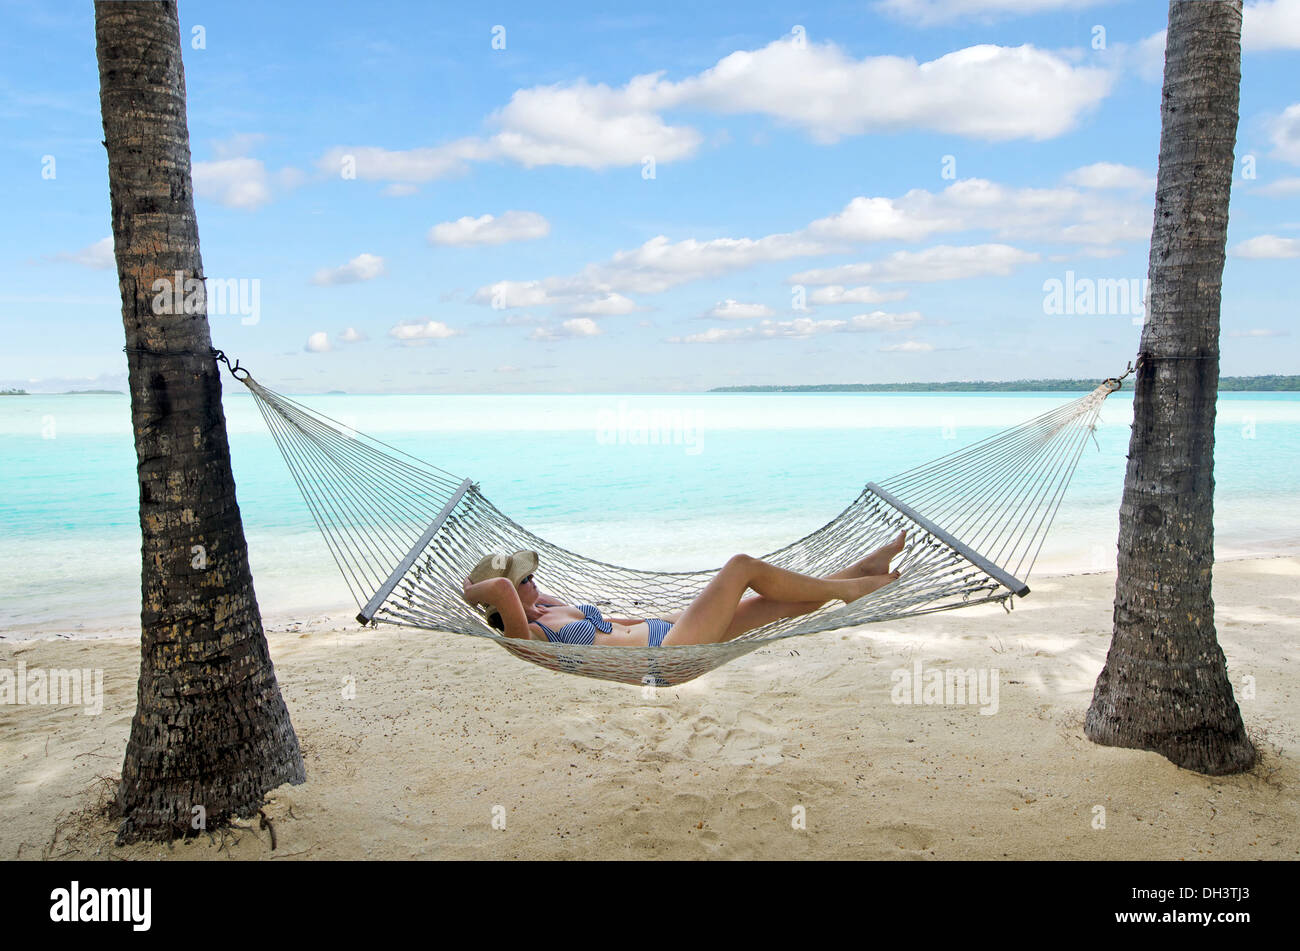 Happy woman relaxing on hammock on the beach during travel vacation on tropical island in Aitutaki lagoon, Cook Islands. - Stock Image